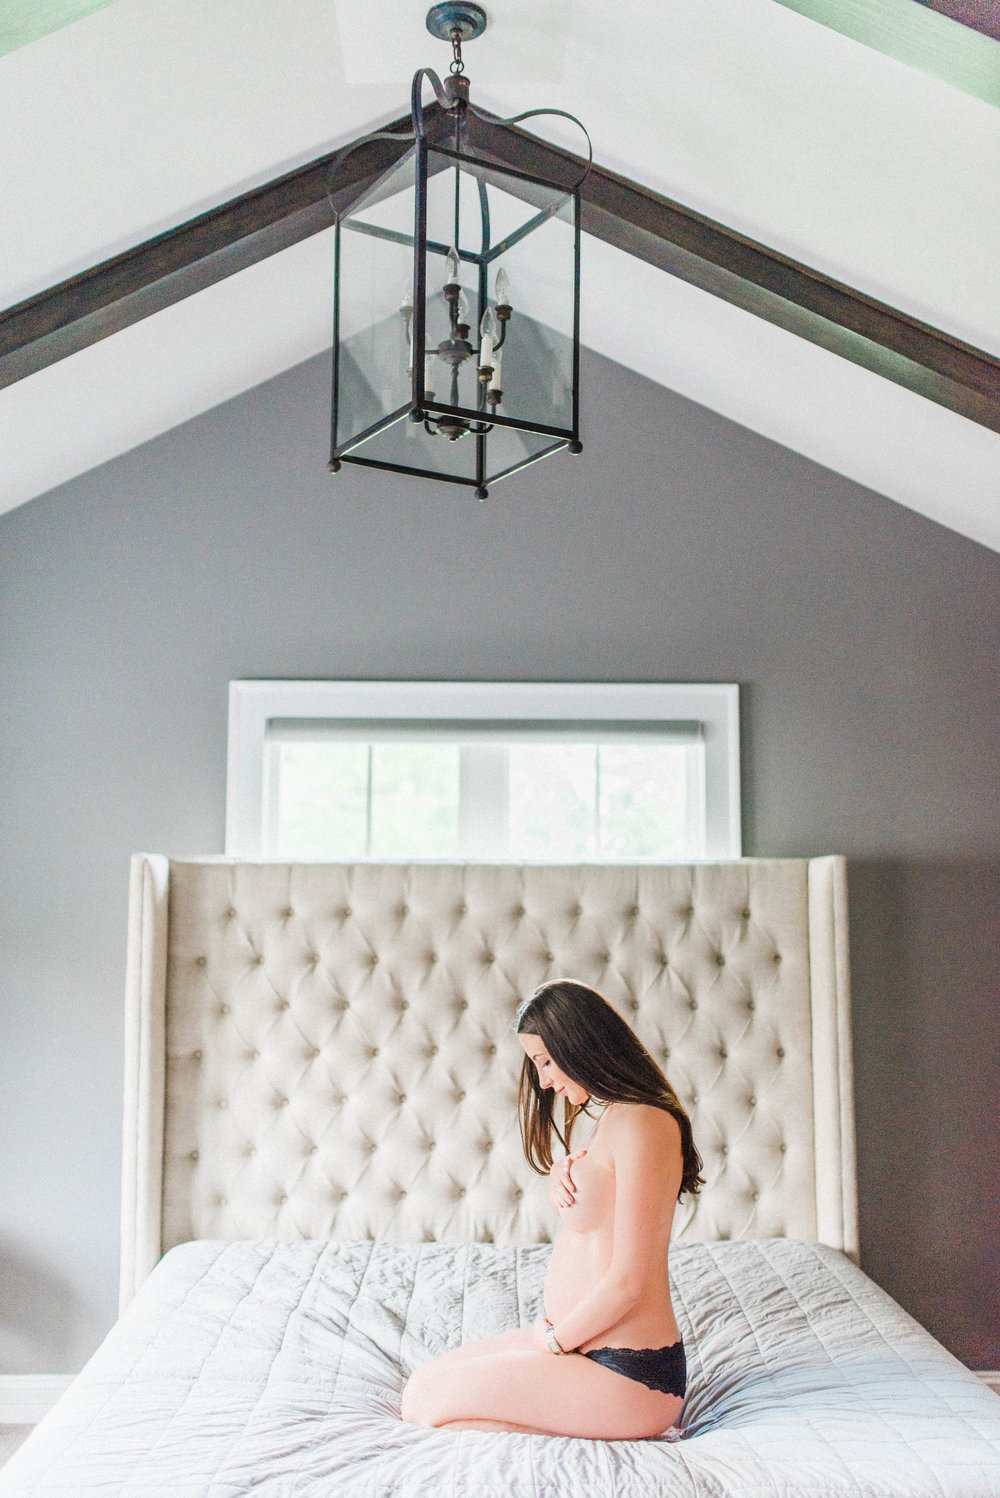 One of our favorite mamas during her lifestyle boudoir maternity session in 2017!